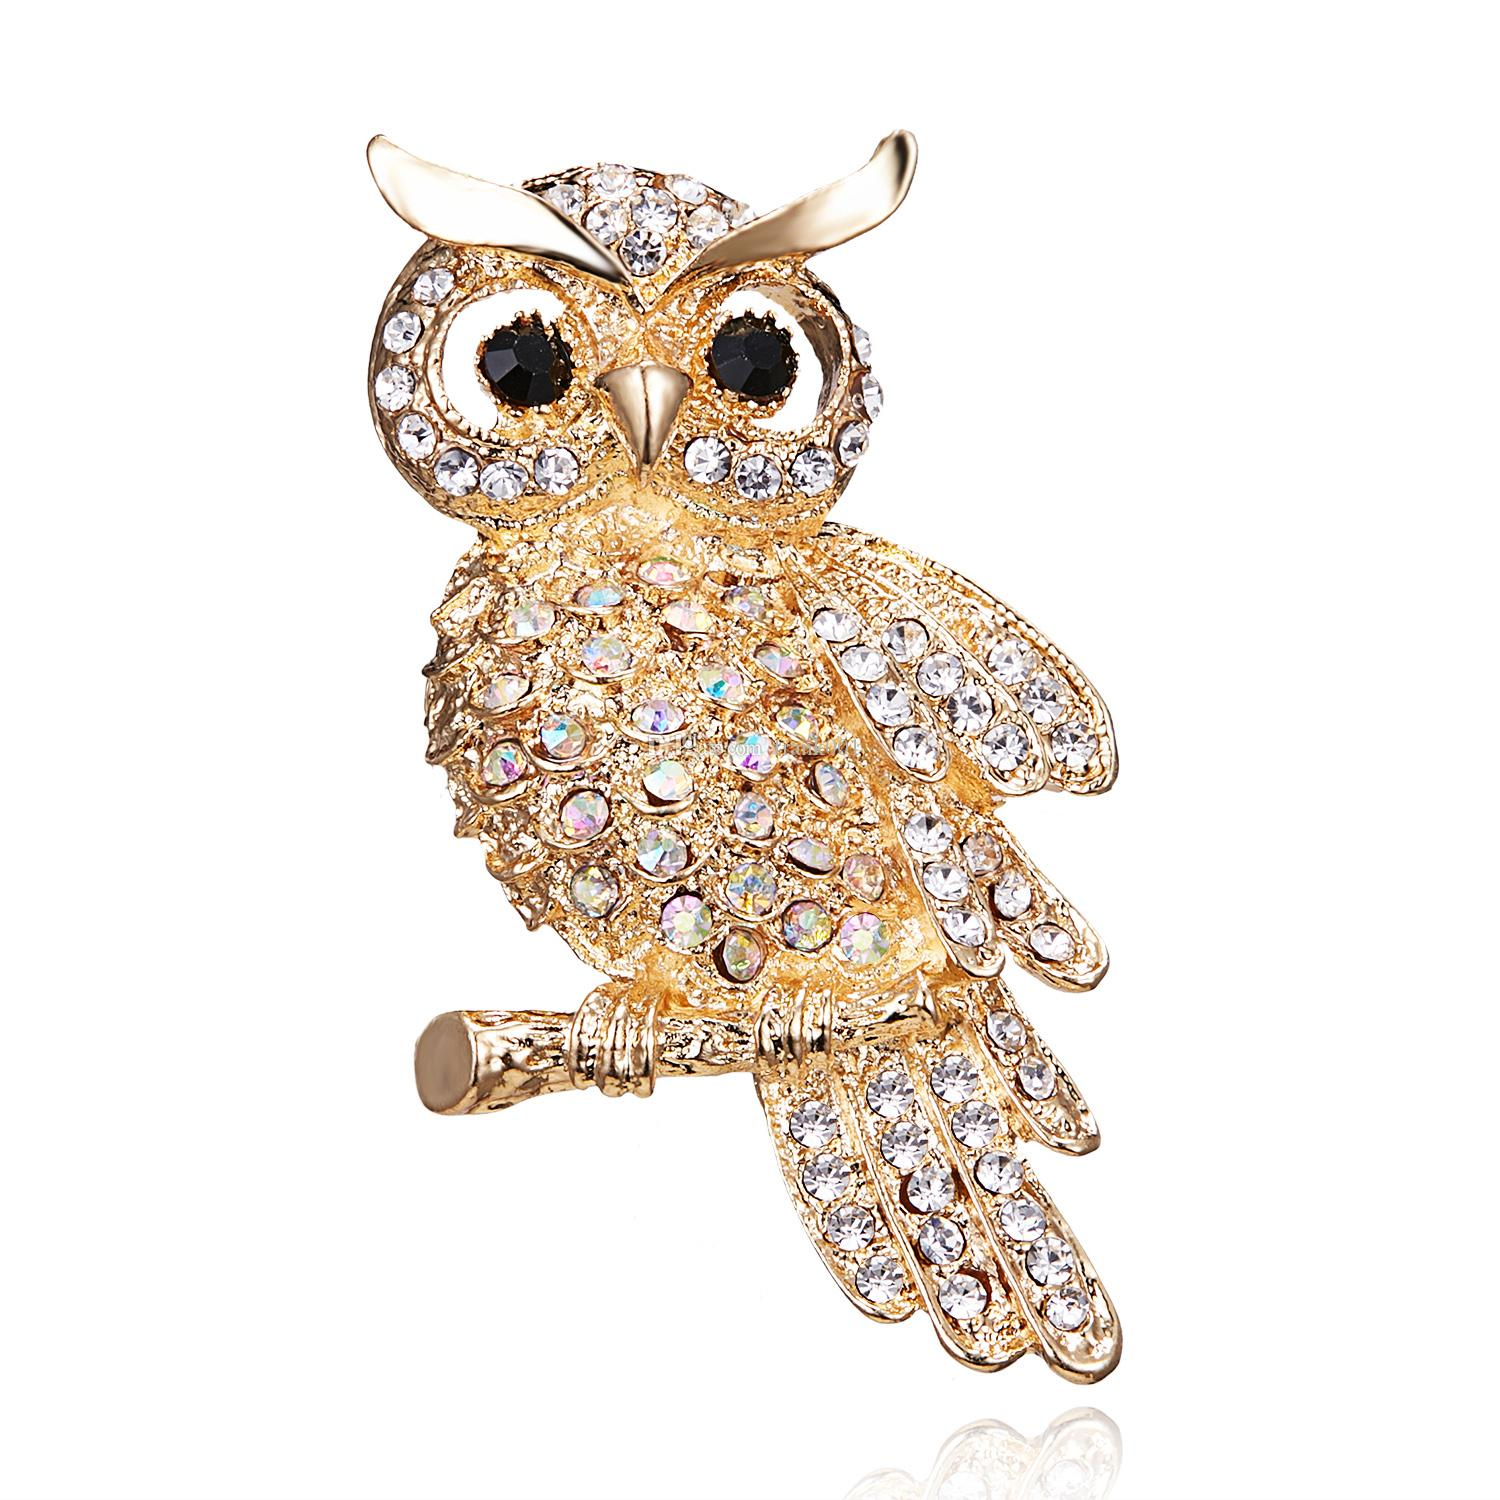 Large Bird Owls Vintage Brooches Antiques Bouquet Owle Pin Up Designer Wedded Broach Scarf Clips Jewellerys Free Shipping